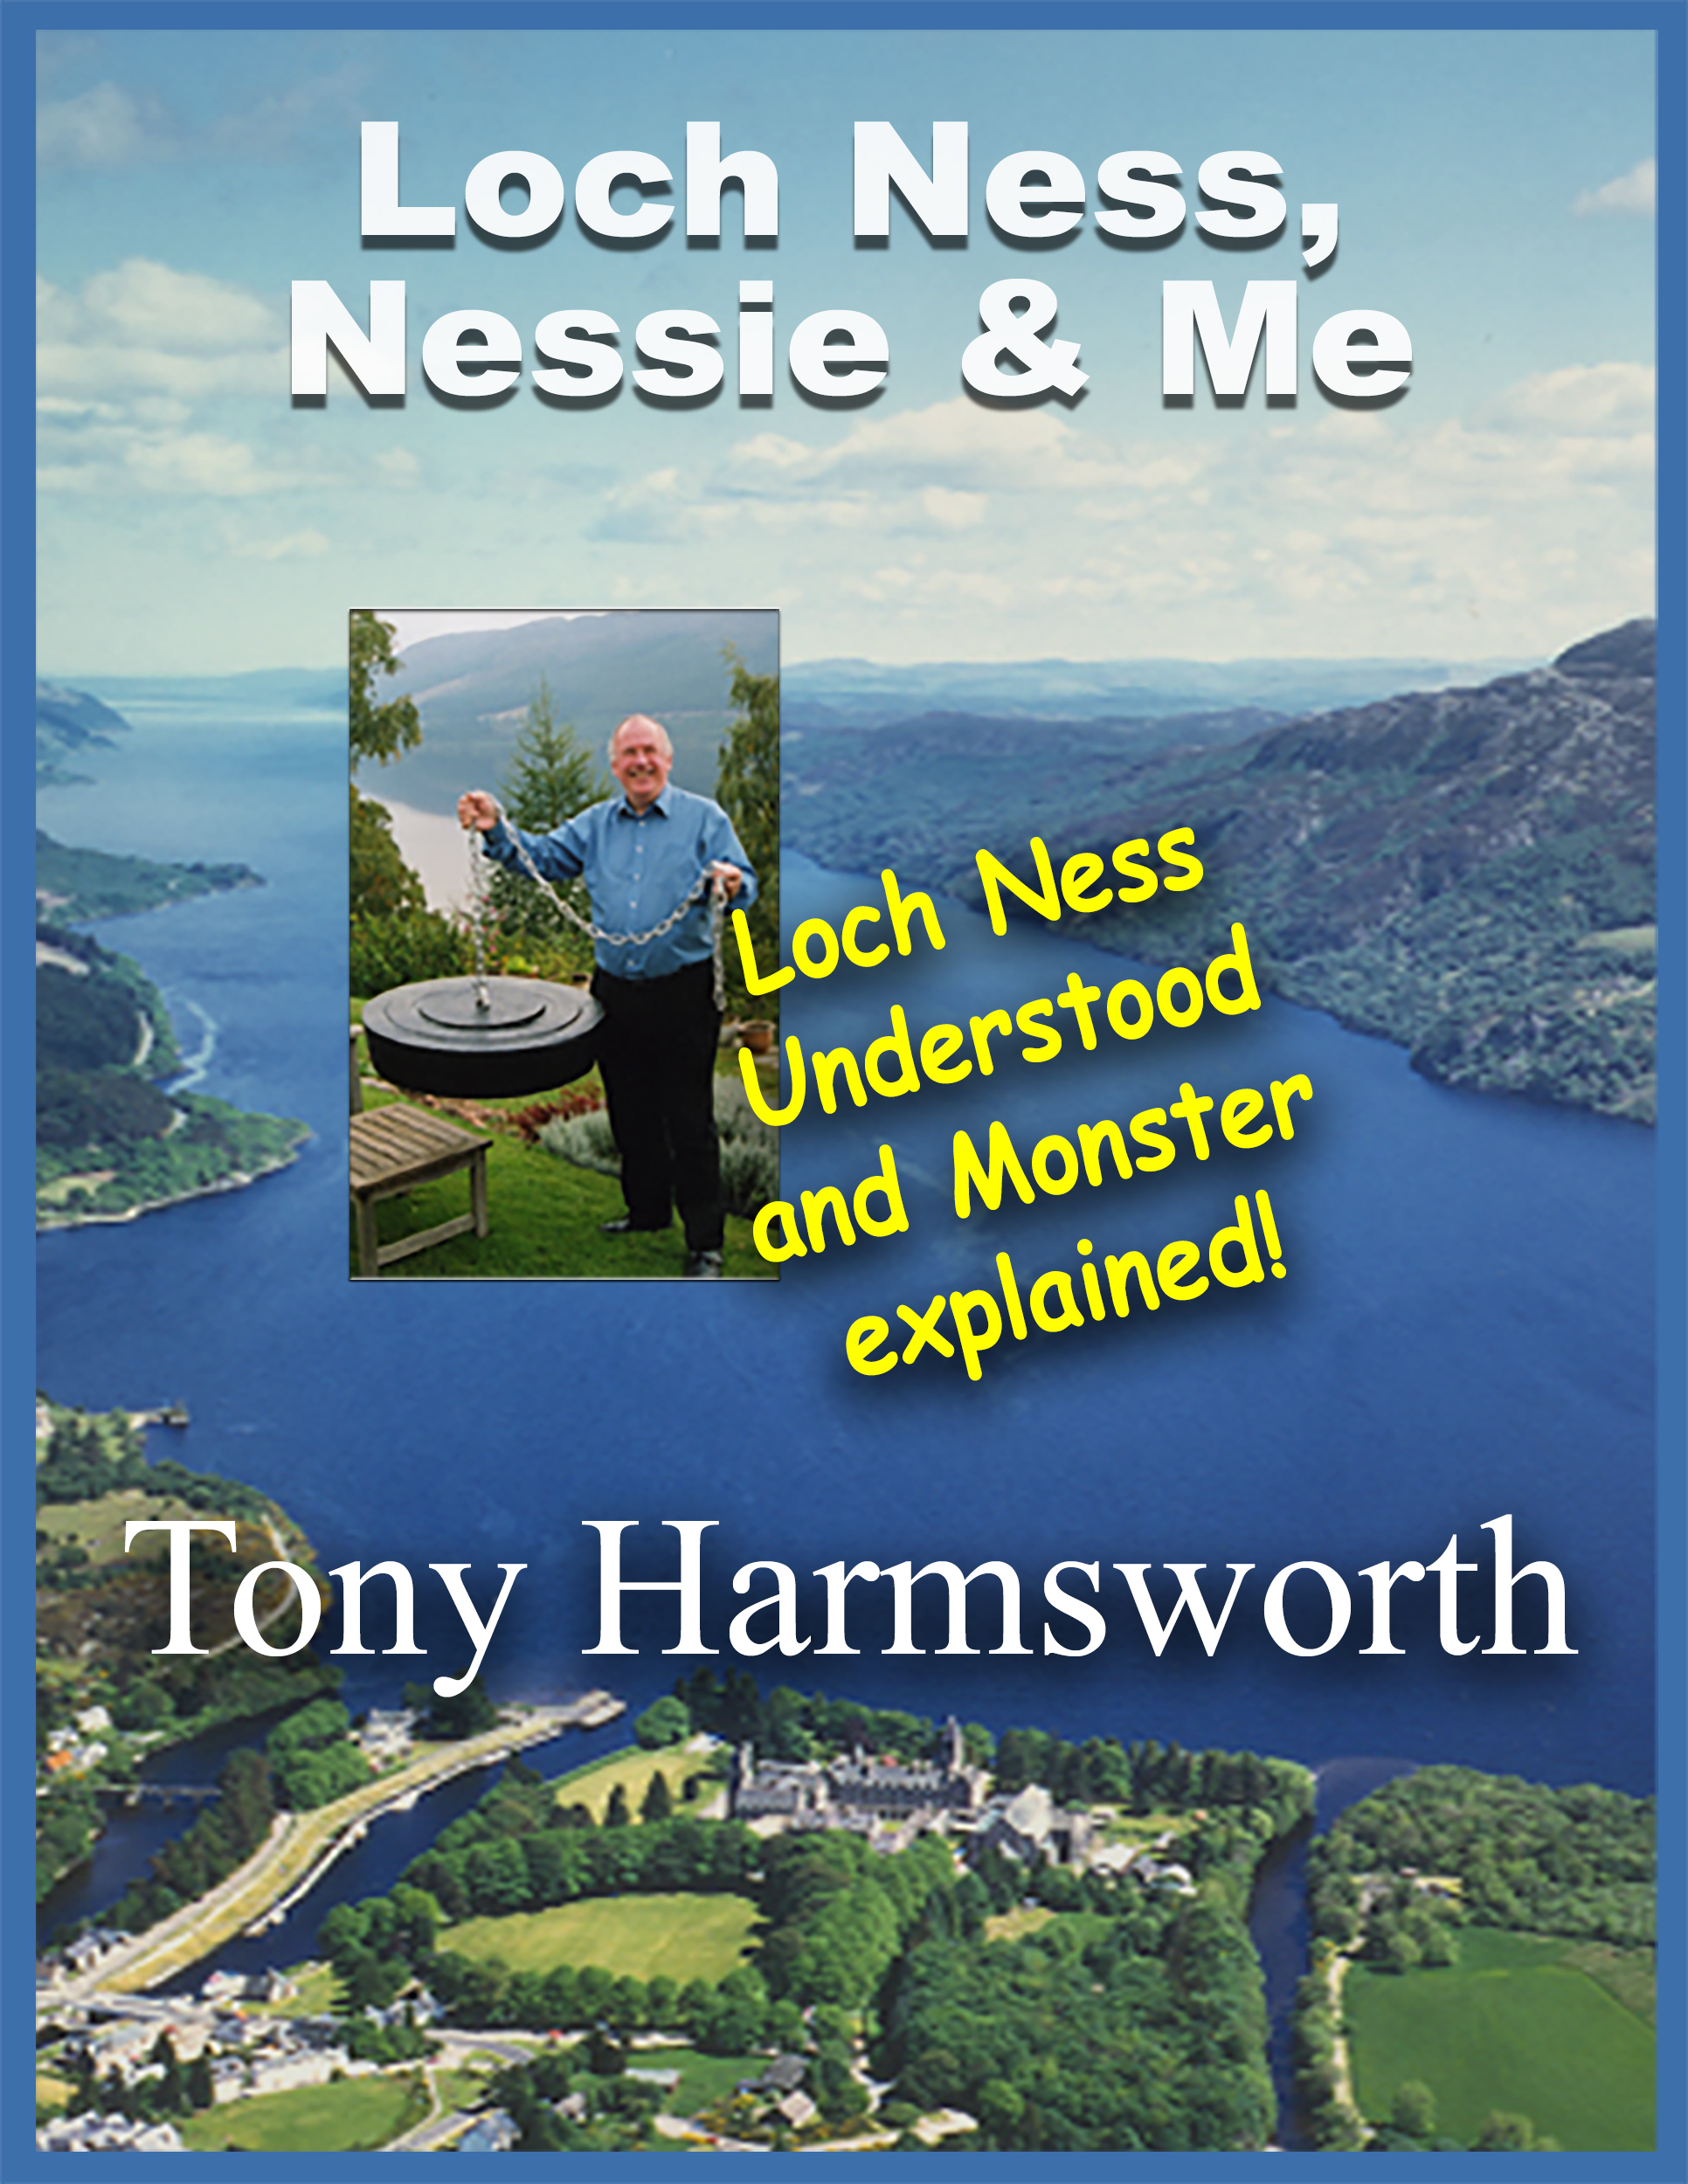 Loch Ness, Nessie and Me